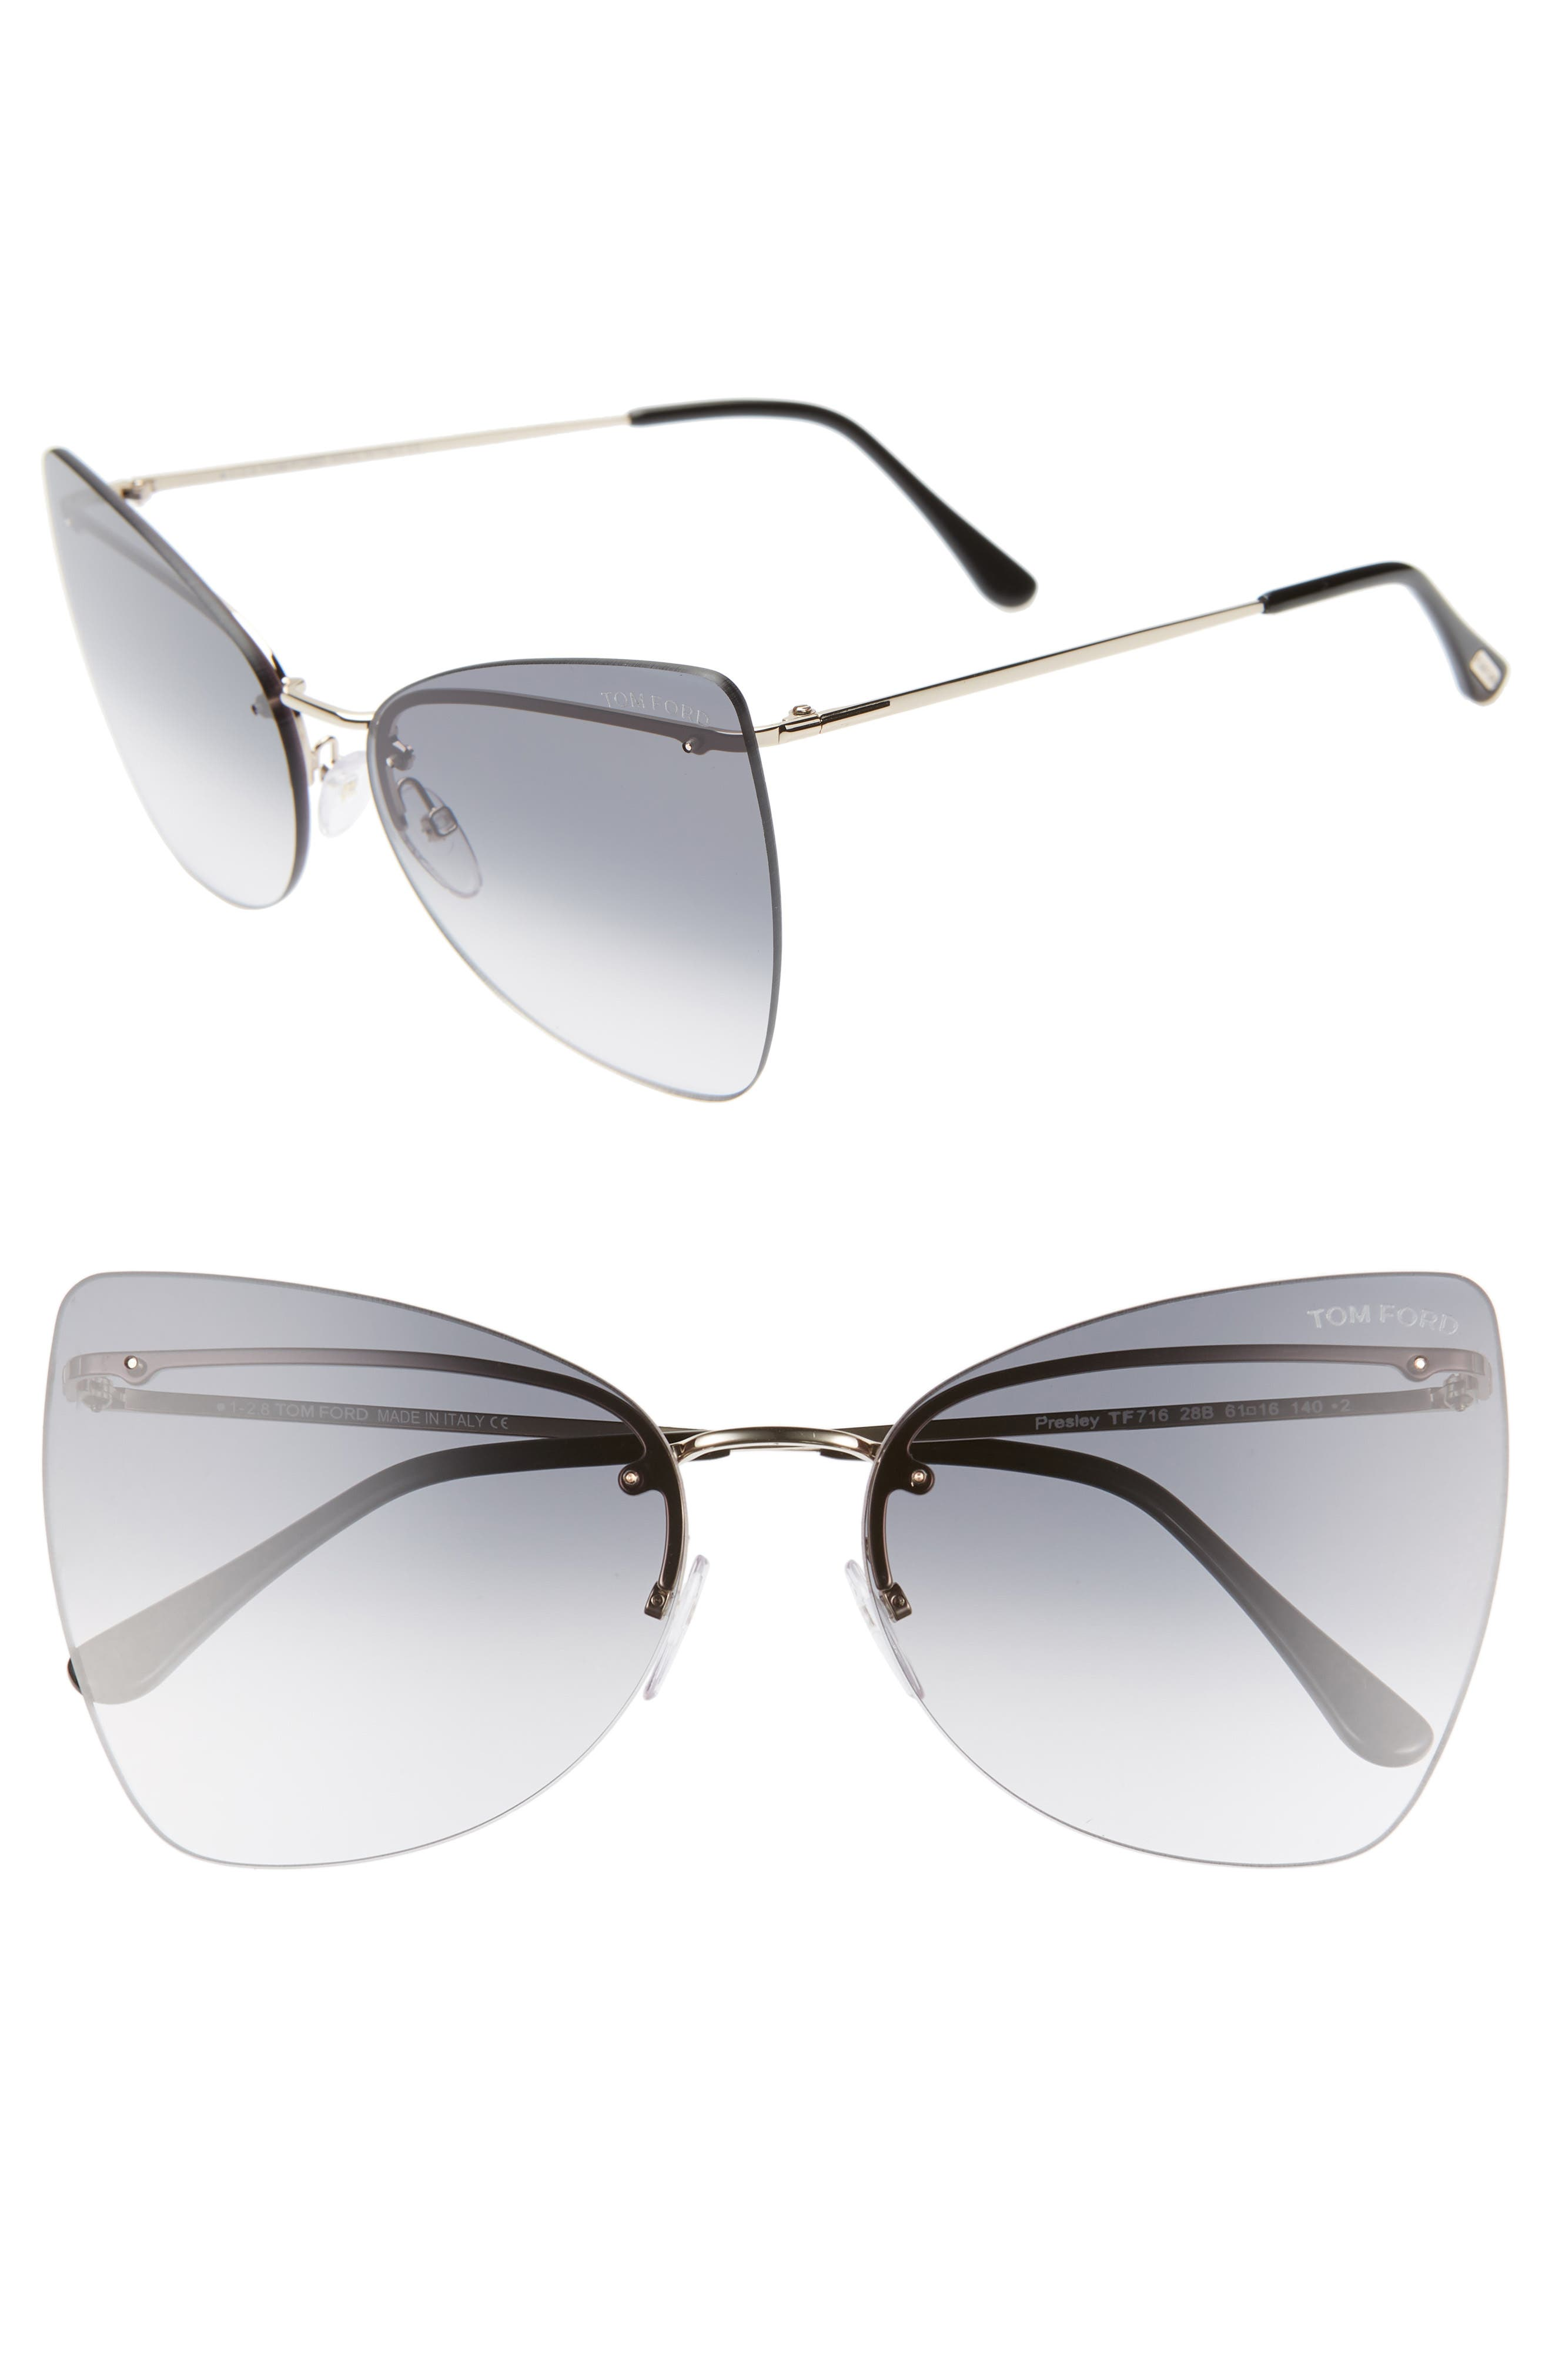 Tom Ford Presley 61Mm Butterfly Sunglasses - Rose Gold/ Black/ Smoke